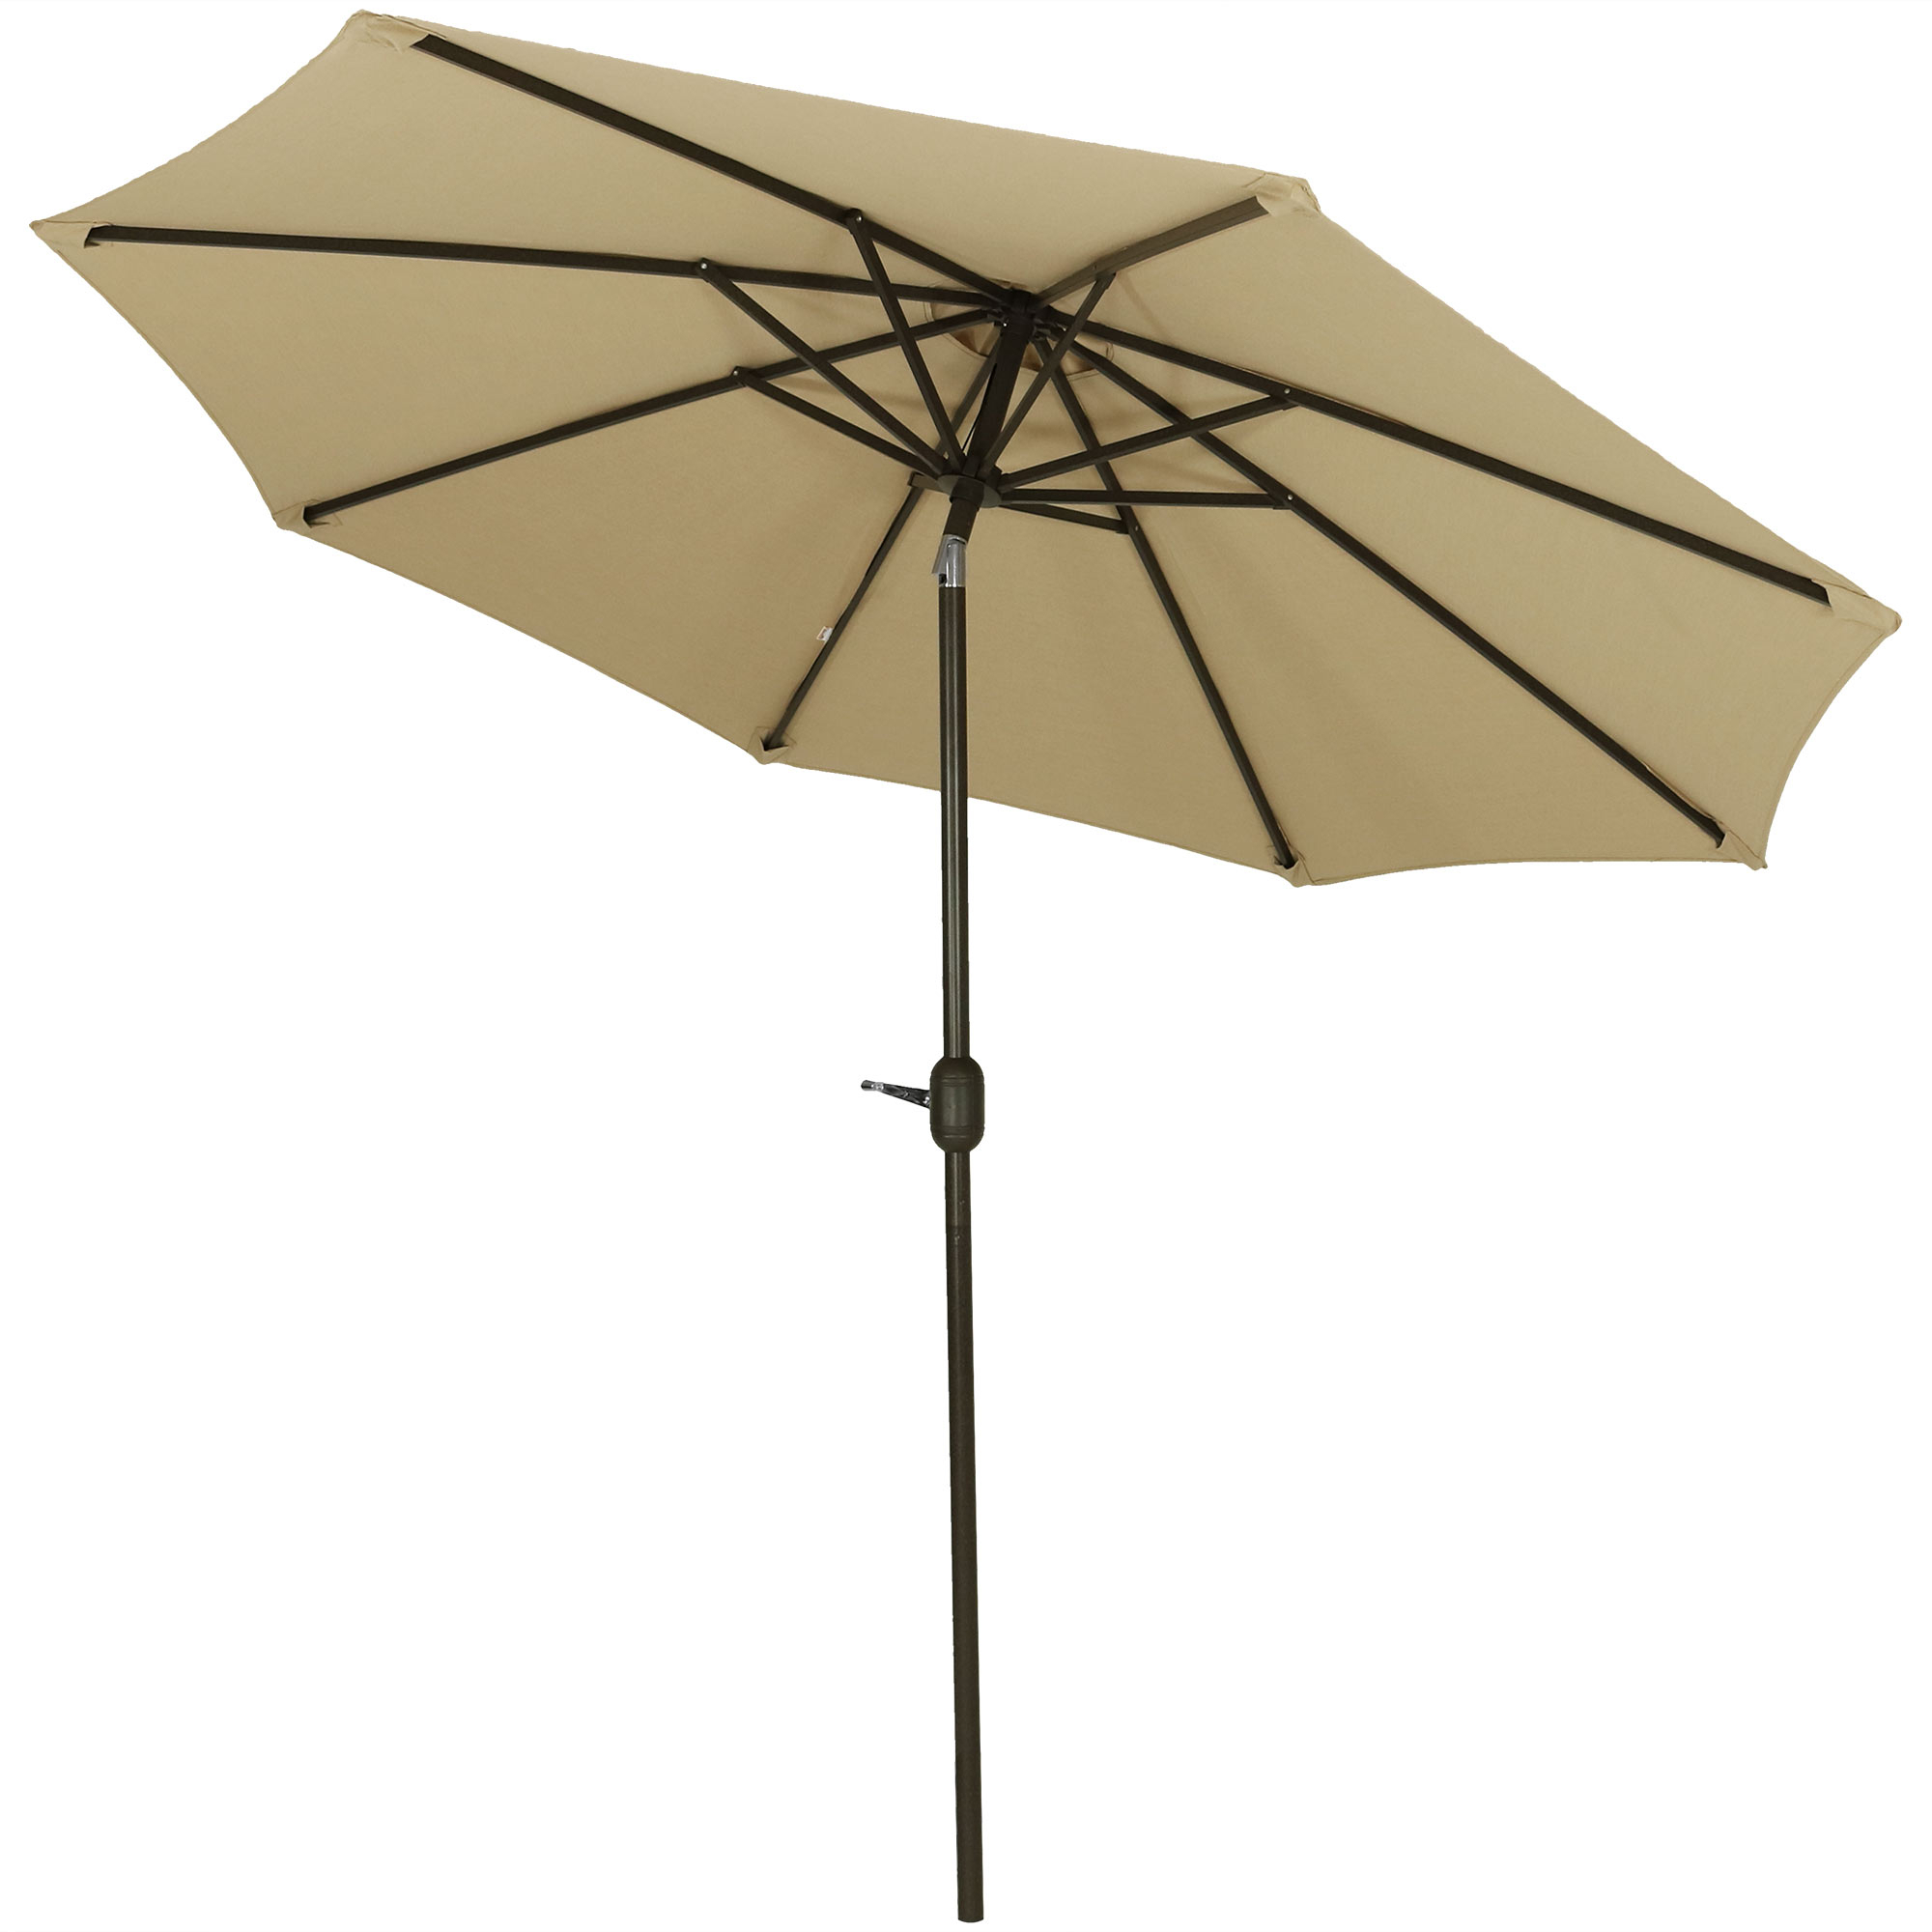 Favorite Julian Market Sunbrella Umbrellas Inside Sunnydaze Sunbrella Patio Umbrella With Auto Tilt And Crank, 9 Foot Outdoor  Market Umbrella, Rust Resistant Aluminum, Sunbrella Beige (View 7 of 20)